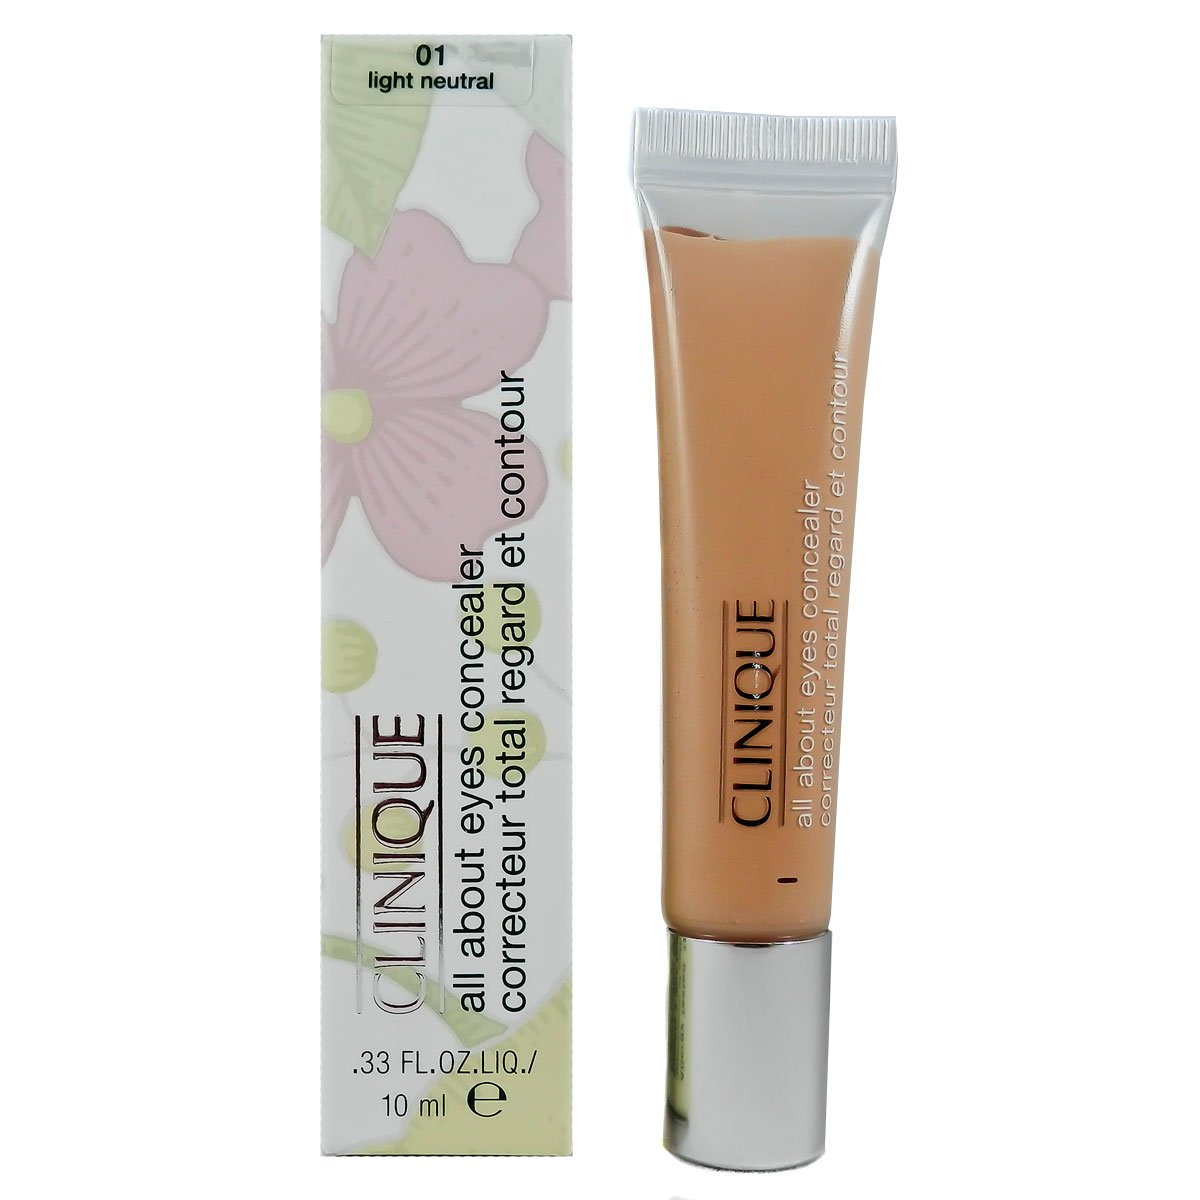 CLINIQUE ALL ABOUT EYES corrector No 01 light neutral 10ml 0020714235338 26087_-10ml